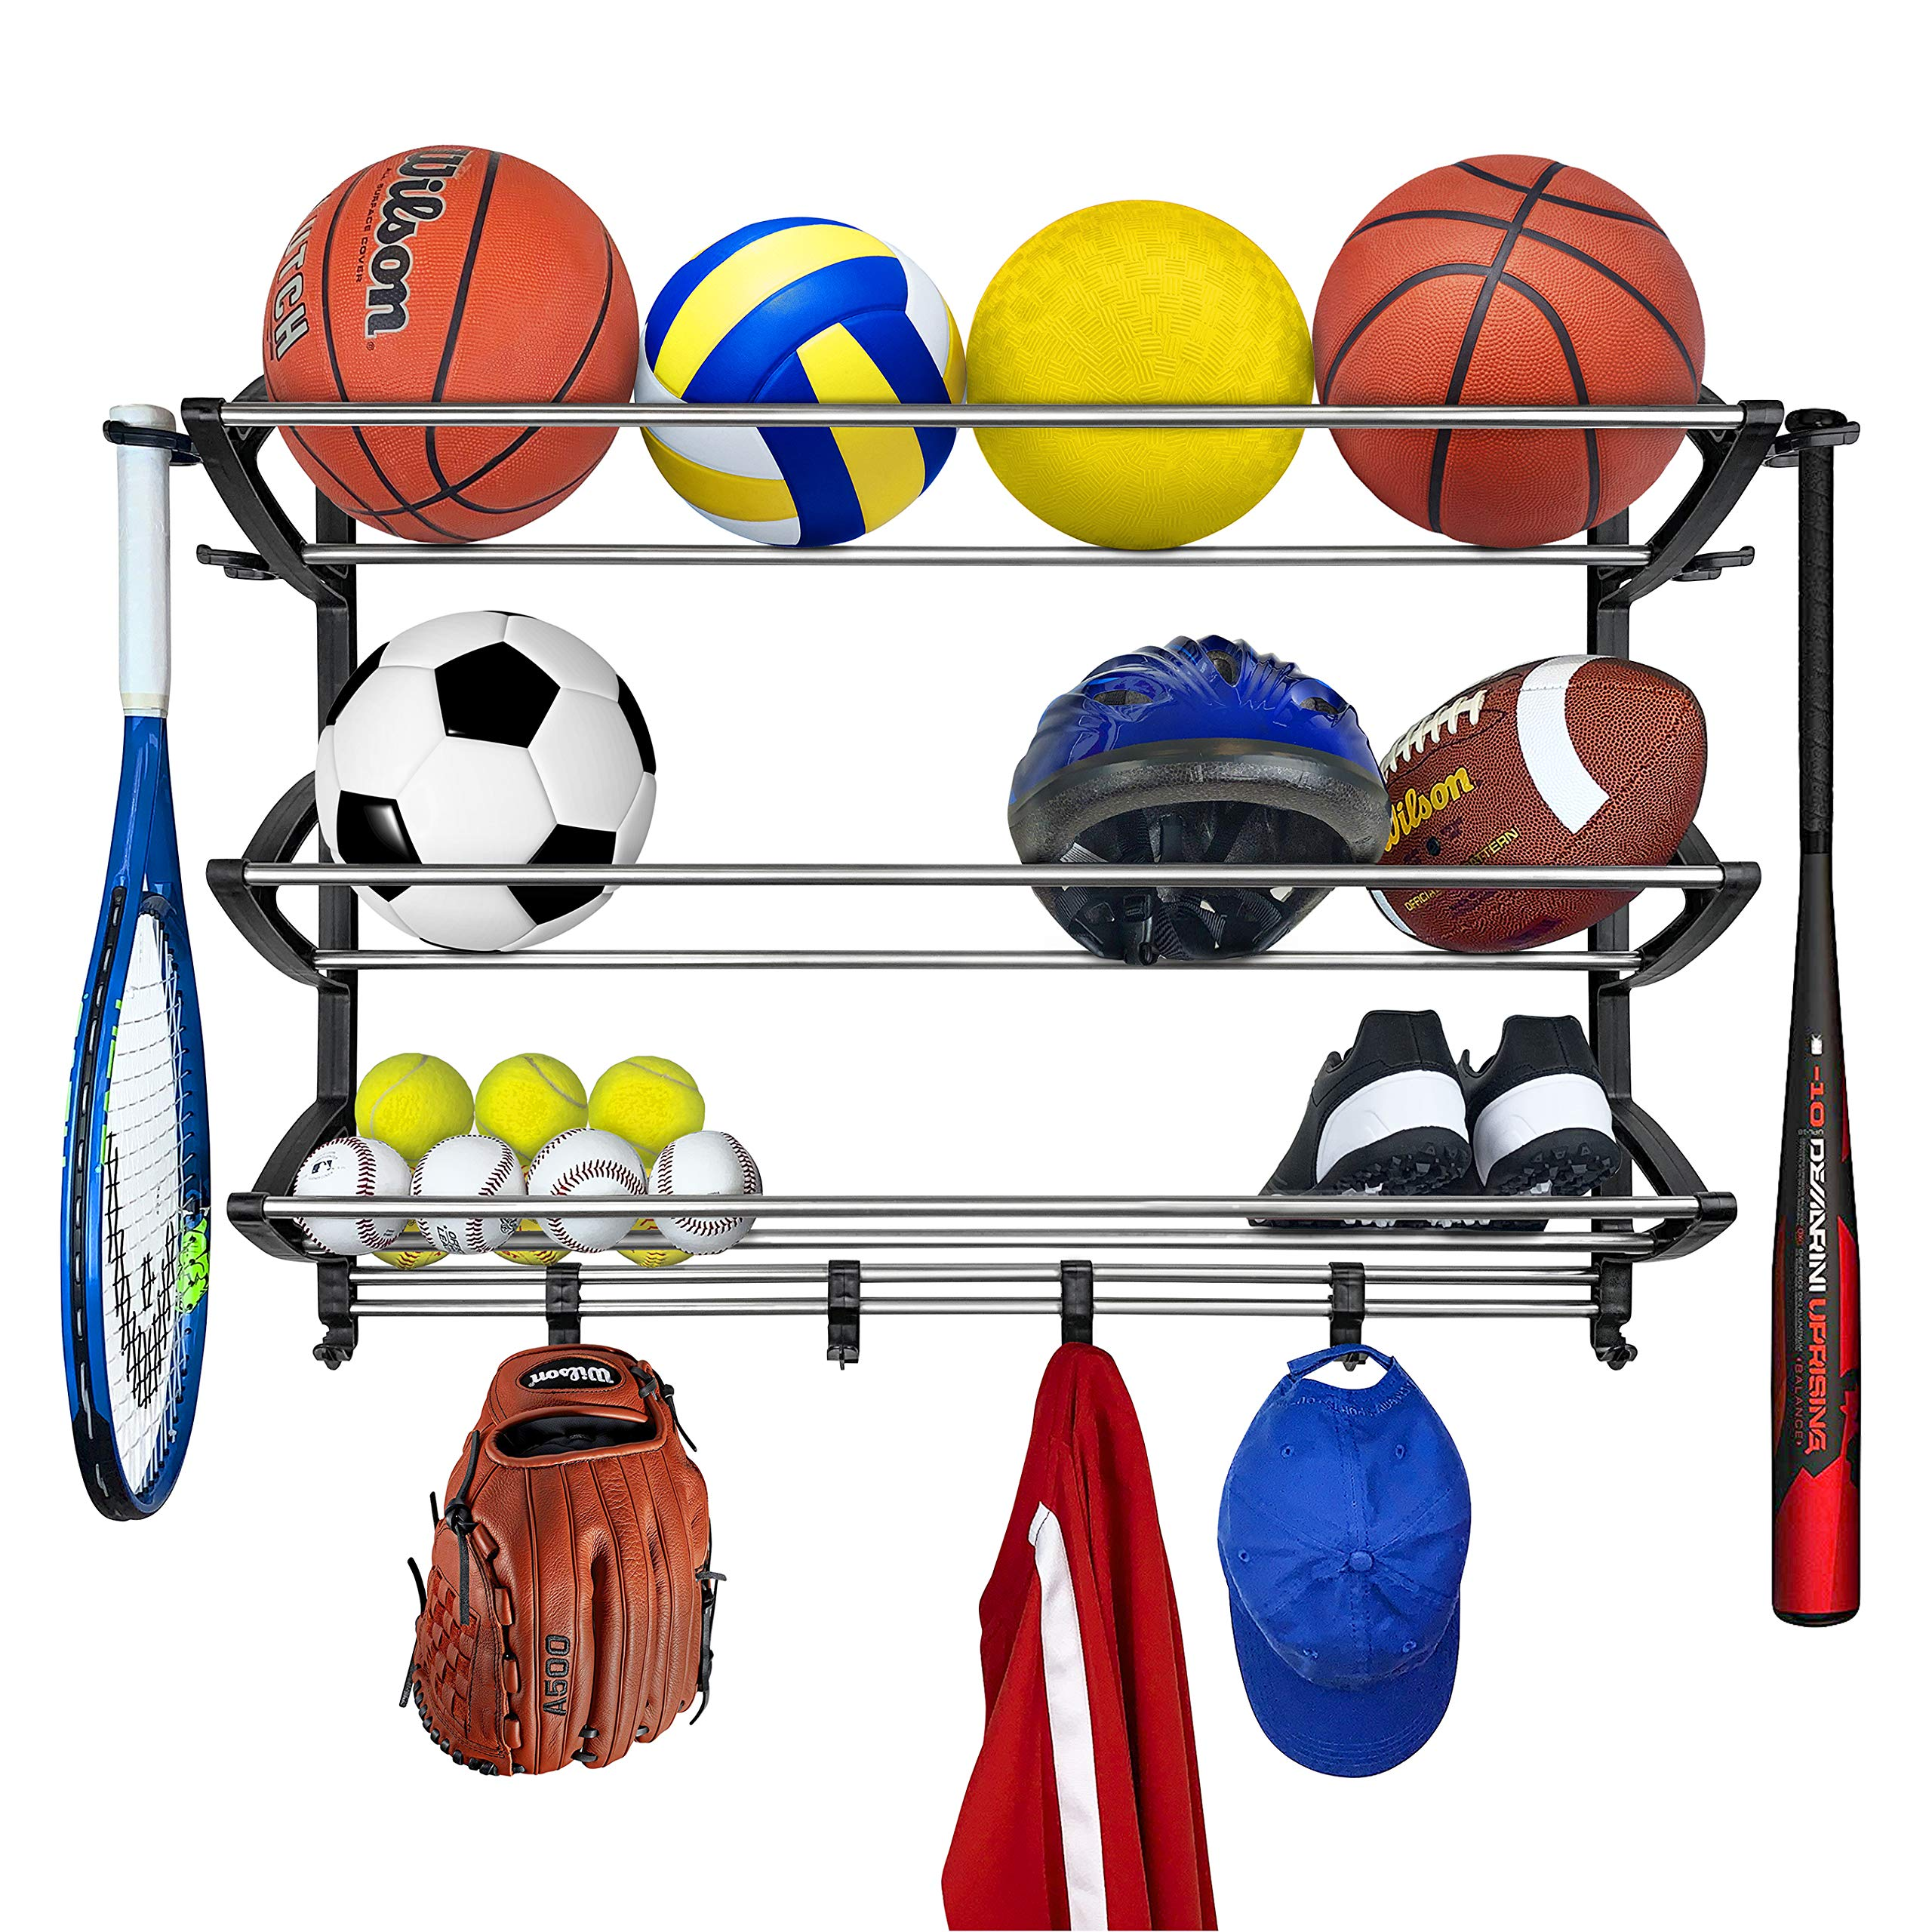 Lynk Rack Organizer Sports Gear Storage-Black by Lynk